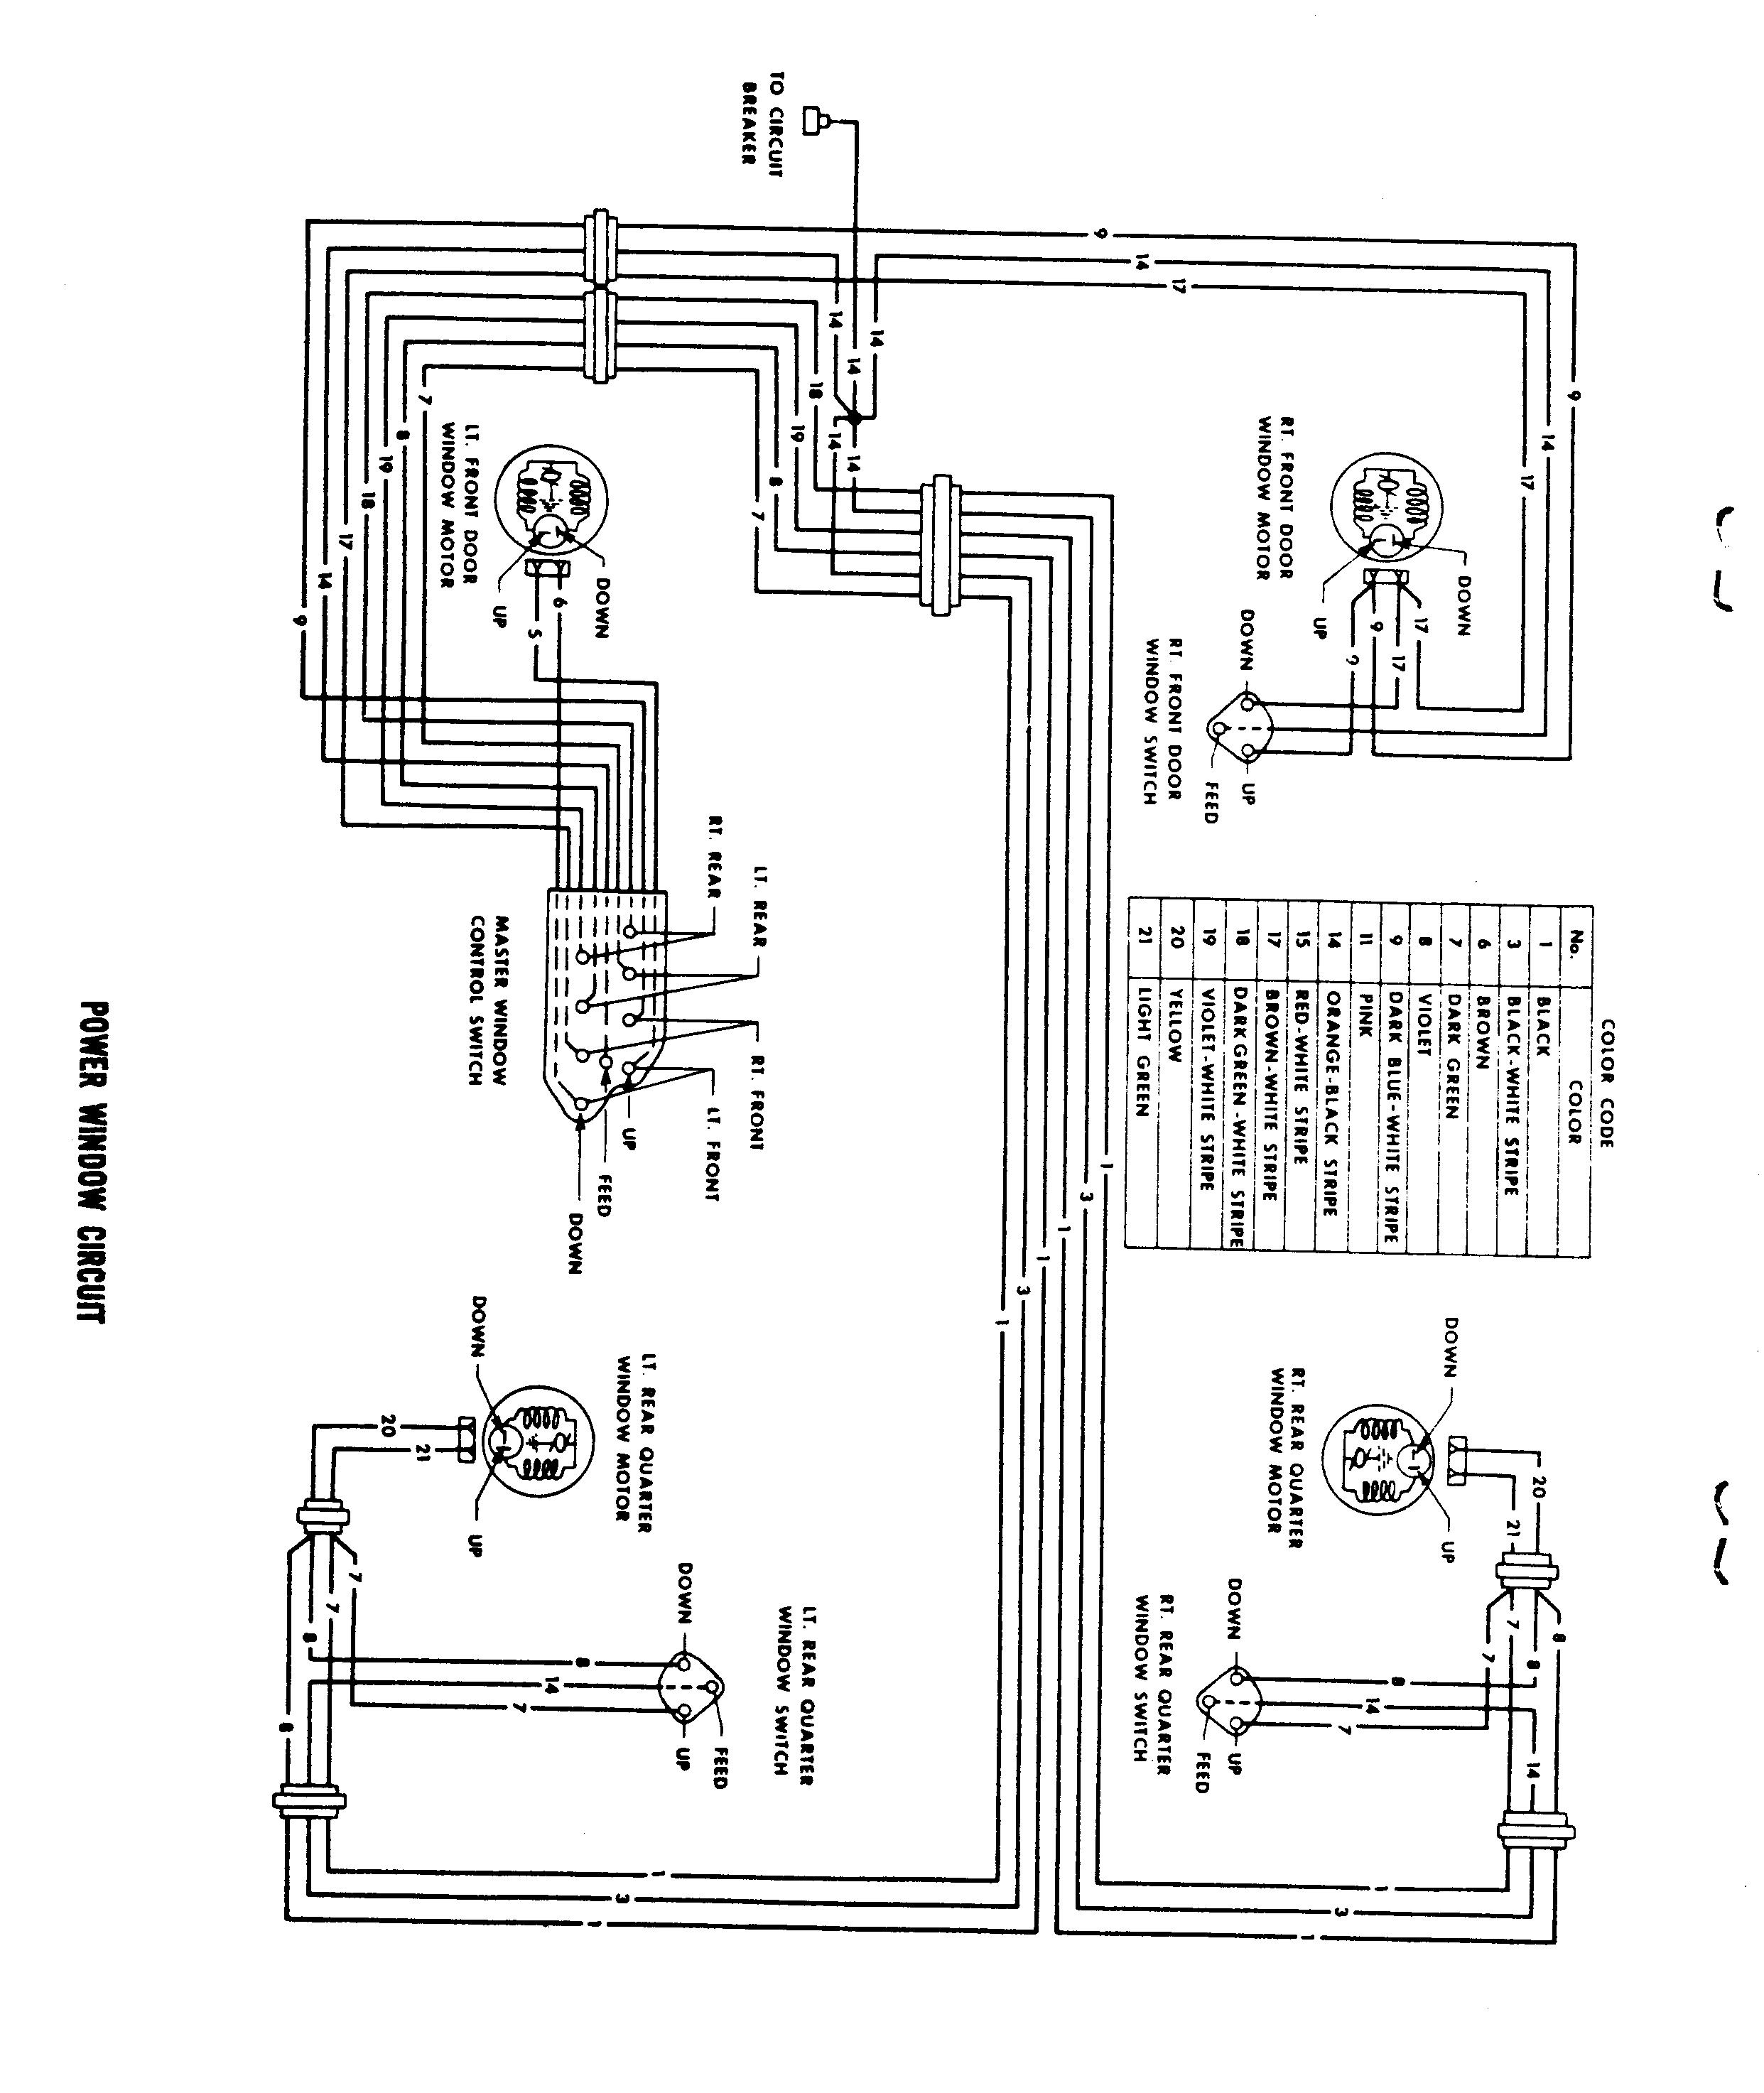 1964 gto wiring diagram tempest lemans gto wiring diagram manual gto wiring diagram scans page pontiac gto forum click image for larger version 68 wiring diagram